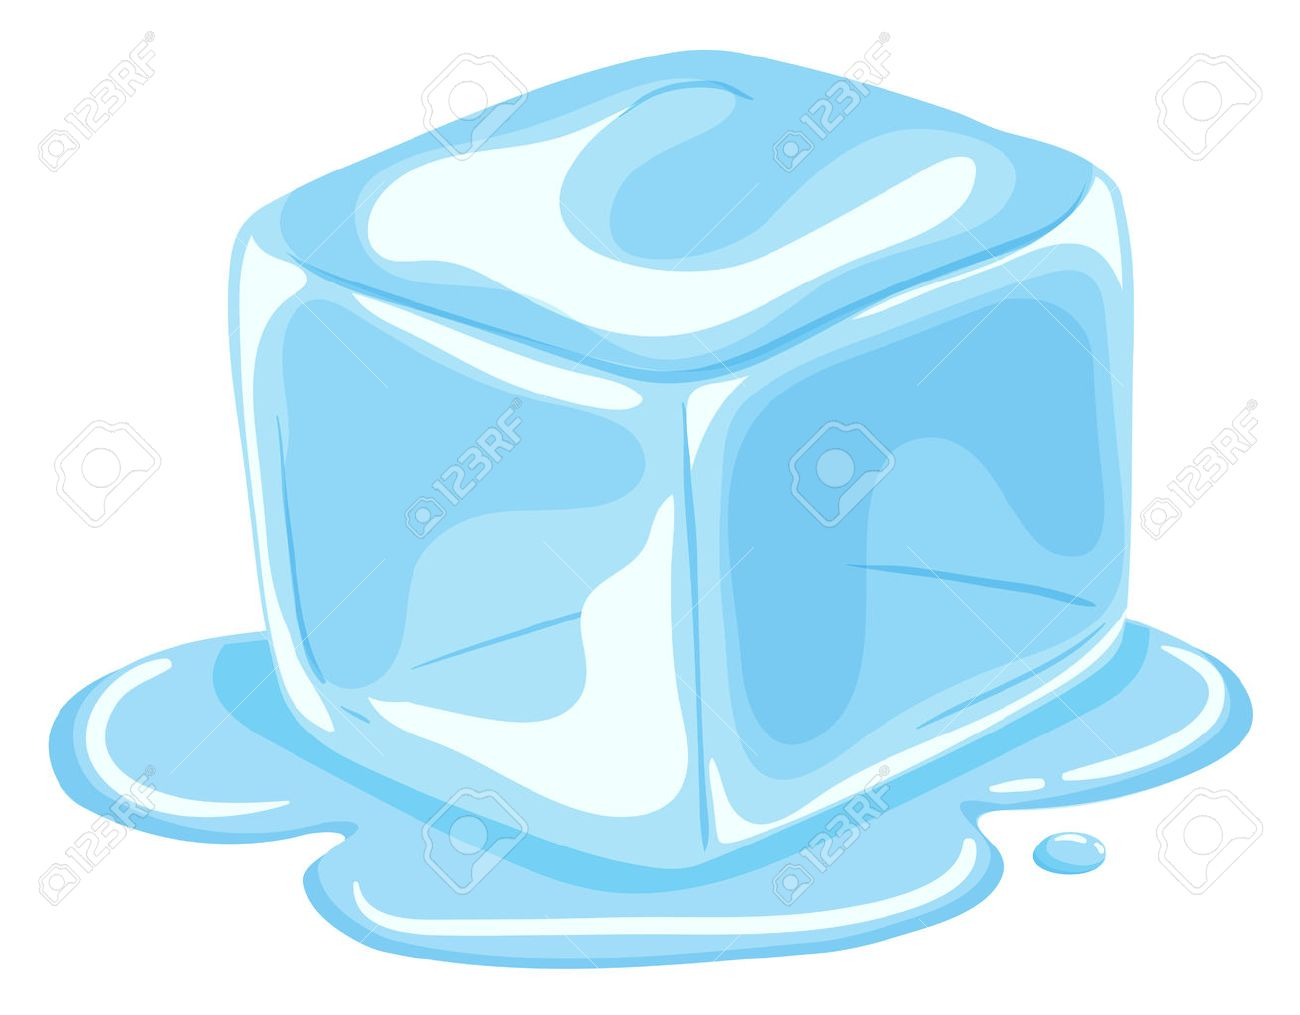 ice cube melting drawing at getdrawings com free for personal use rh getdrawings com ice cubes clipart black and white ice cube clipart images